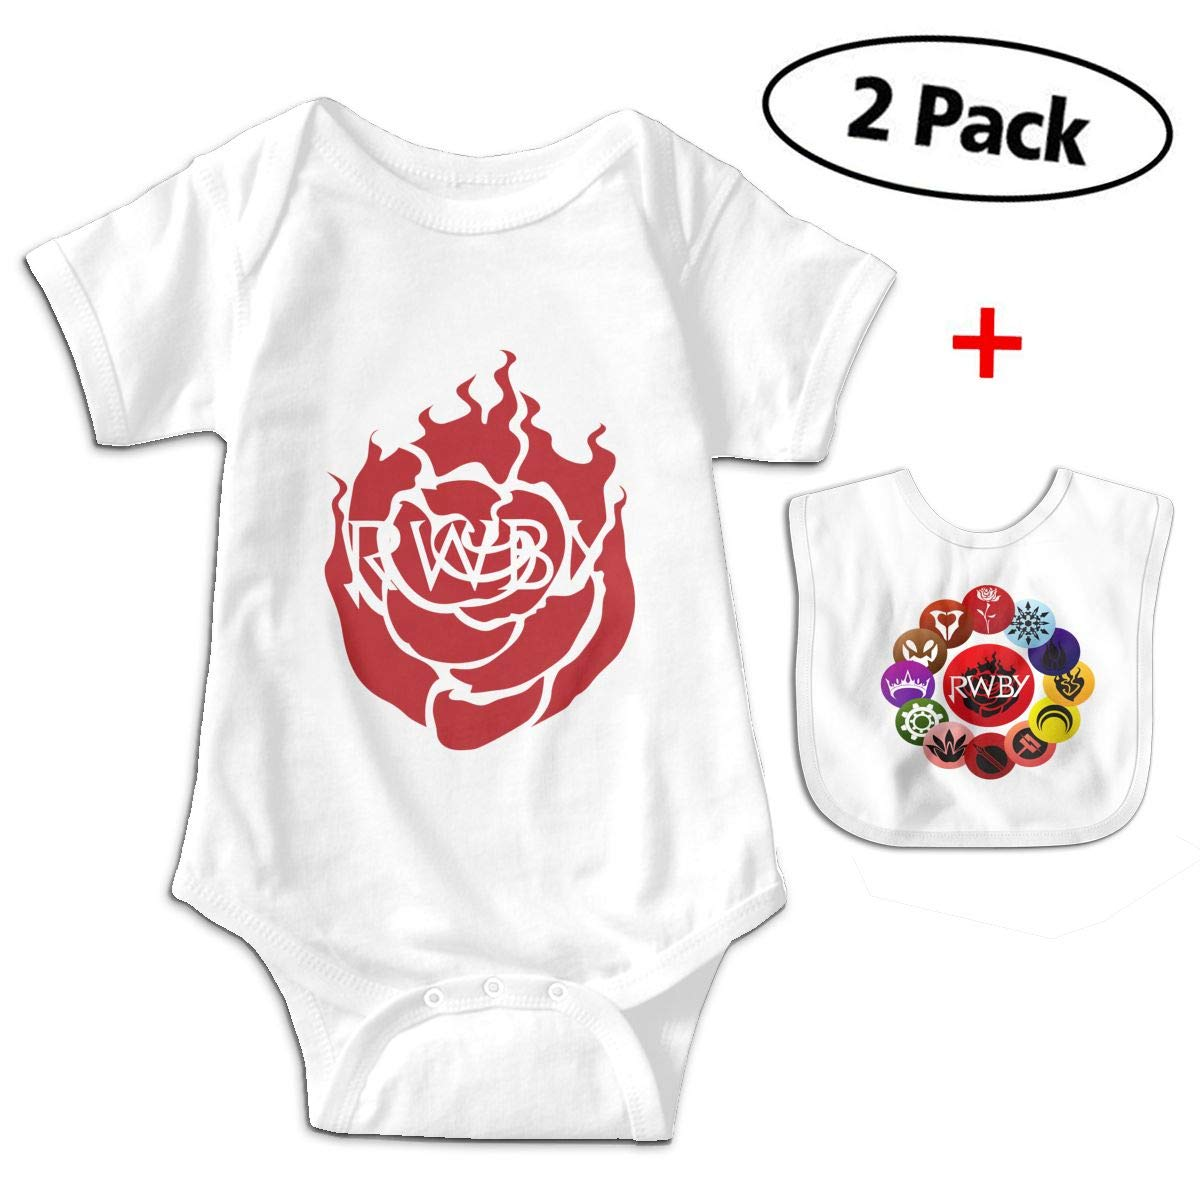 R-W-B-Y Ruby Rose Babys Kids Short Sleeve Jumpsuit Outfits for 3-24 Months and Baby Bib